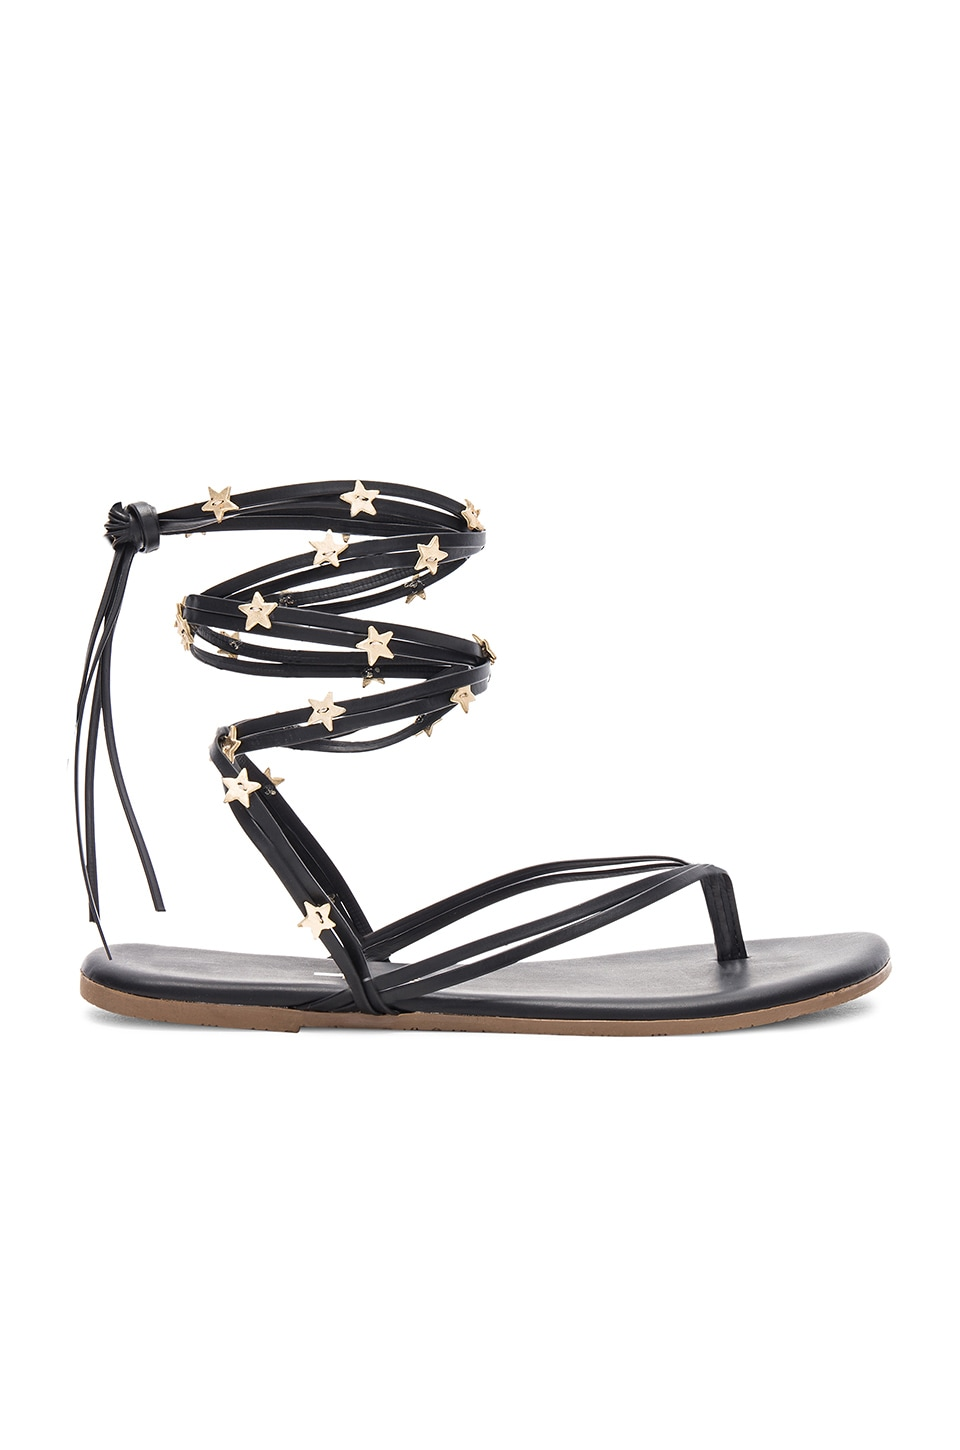 TKEES Lily Wrap Sandal in Rockstar